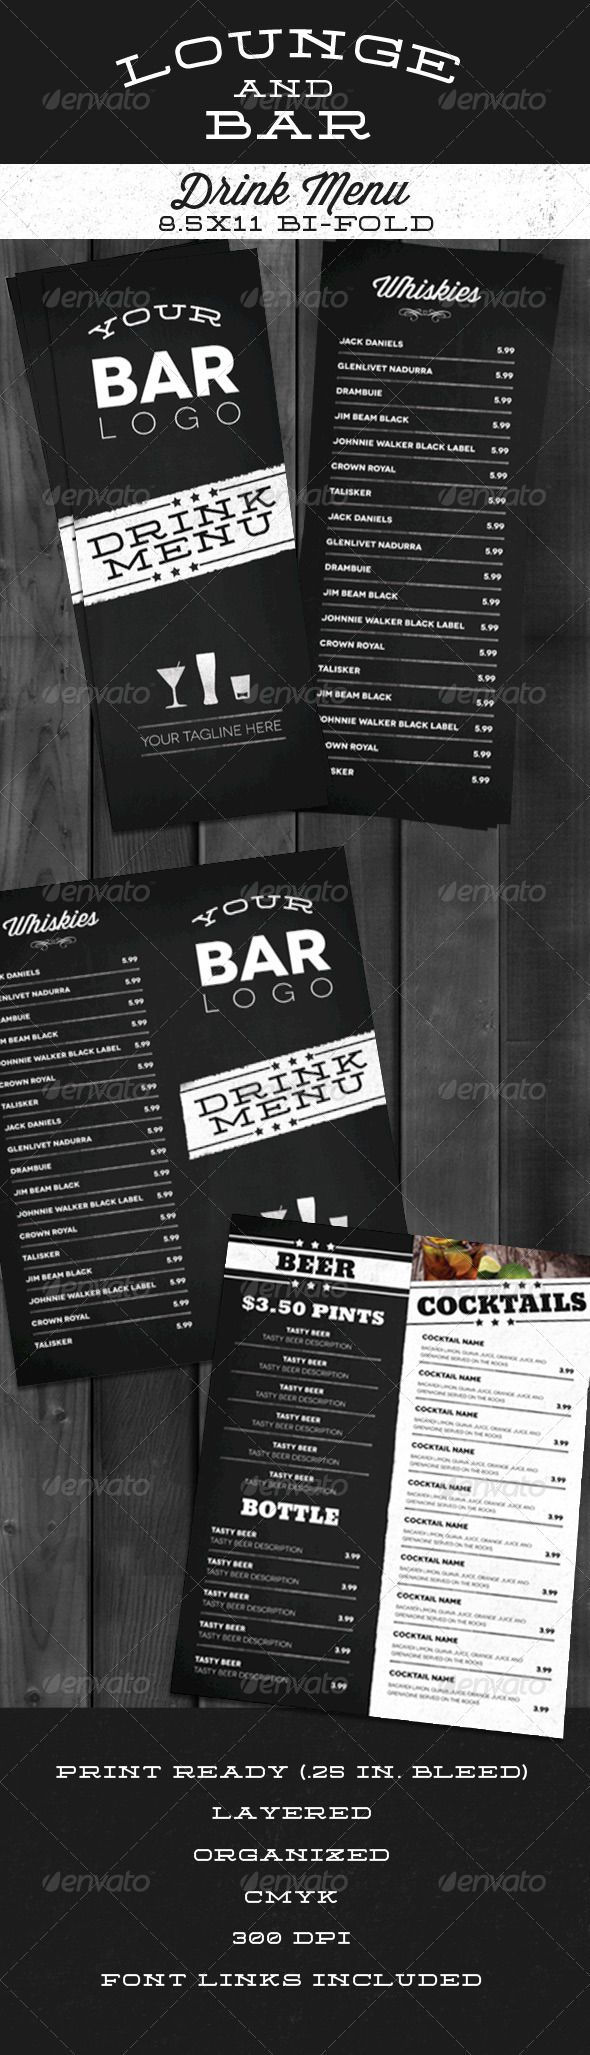 Bar Menu on liquor display ideas